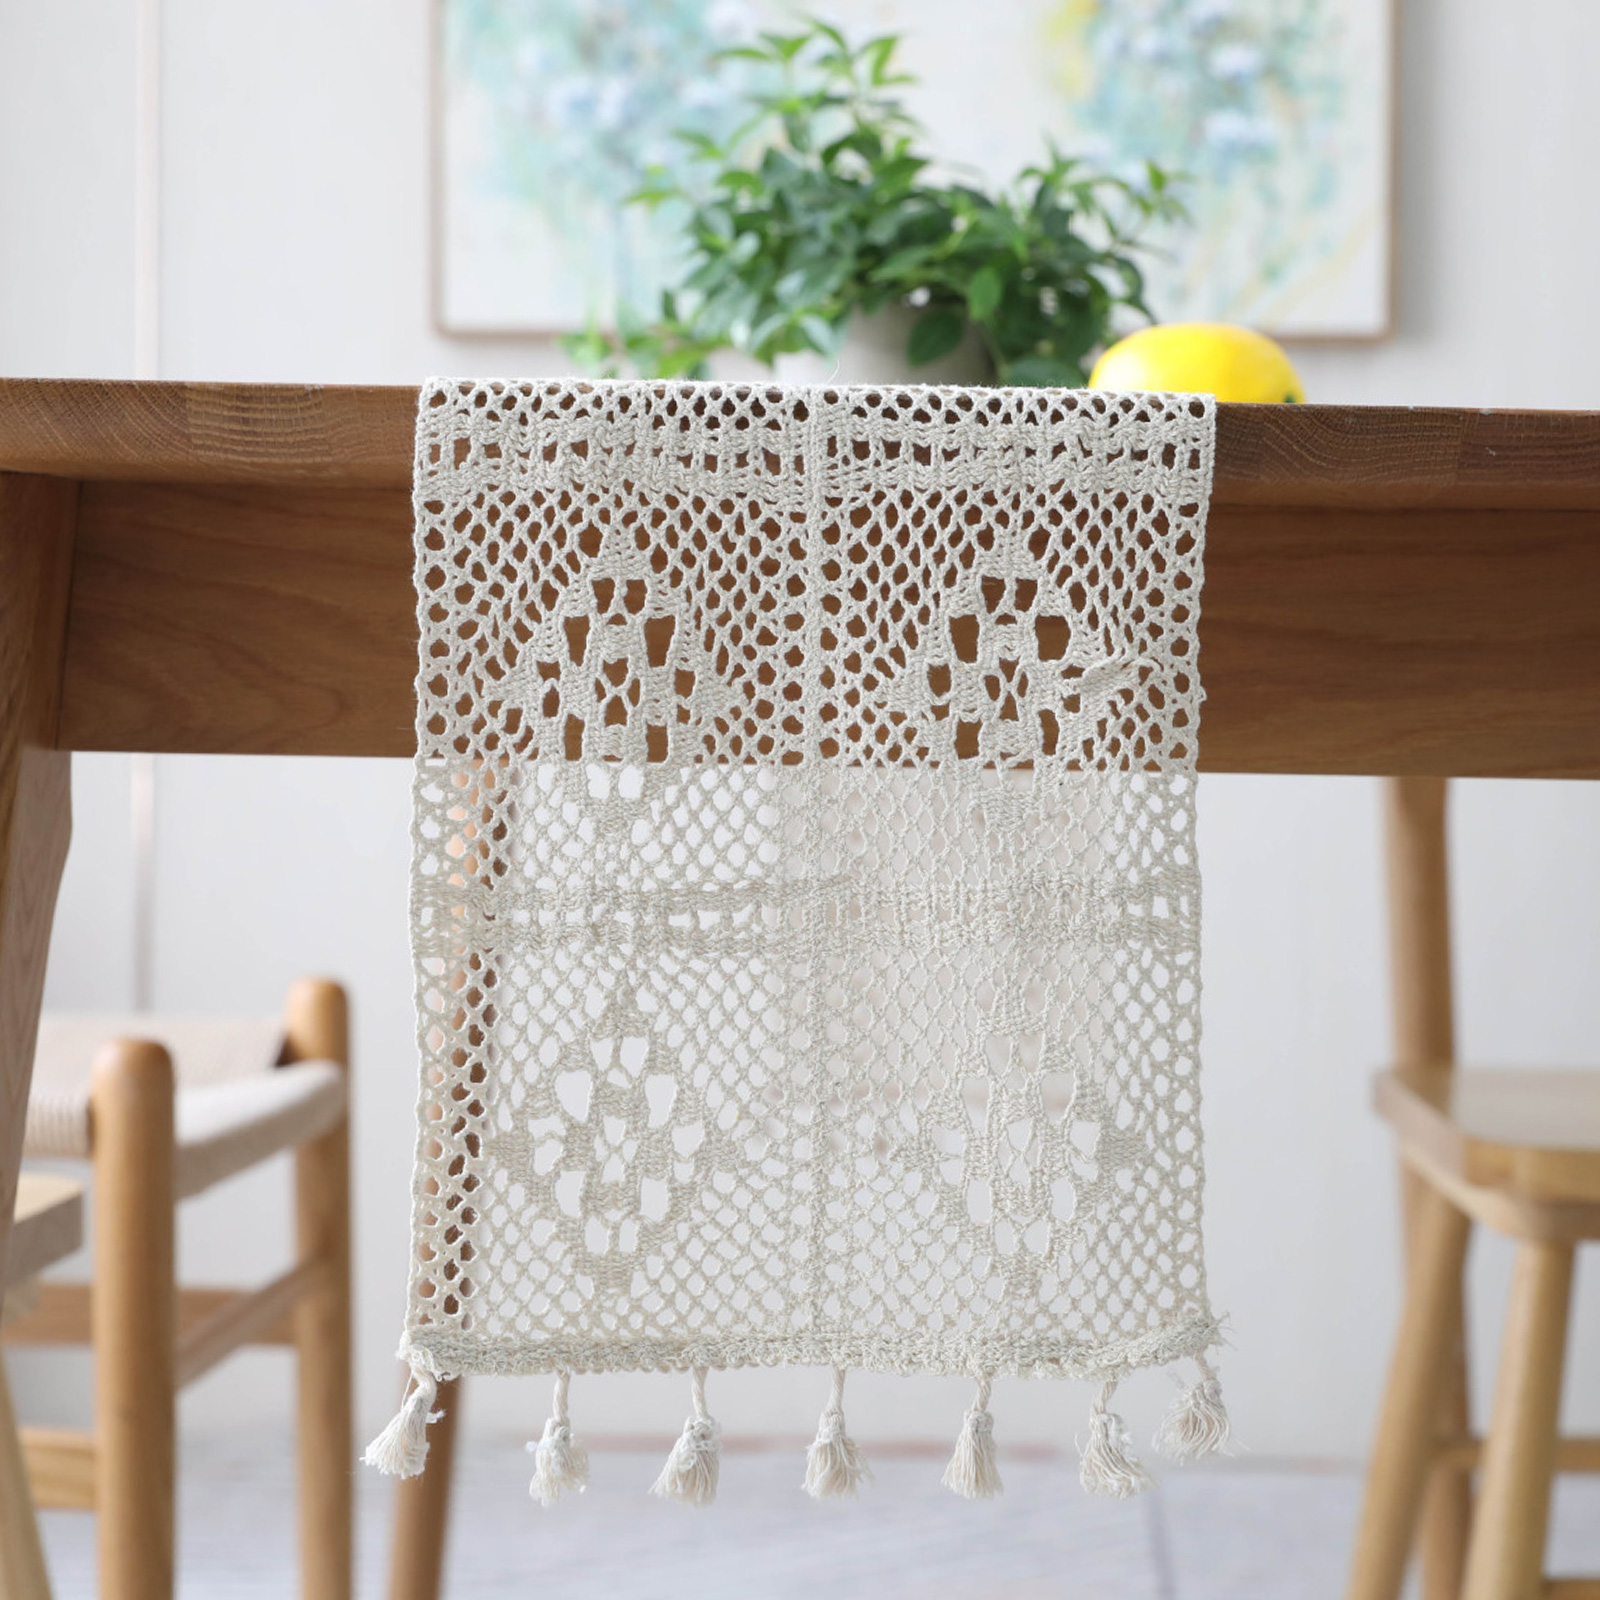 1pcs Lurxury Crochet Lace Embroidered Floral Table Runner With Tassel For Birthday Wedding Christmas Festival Home Party Supply